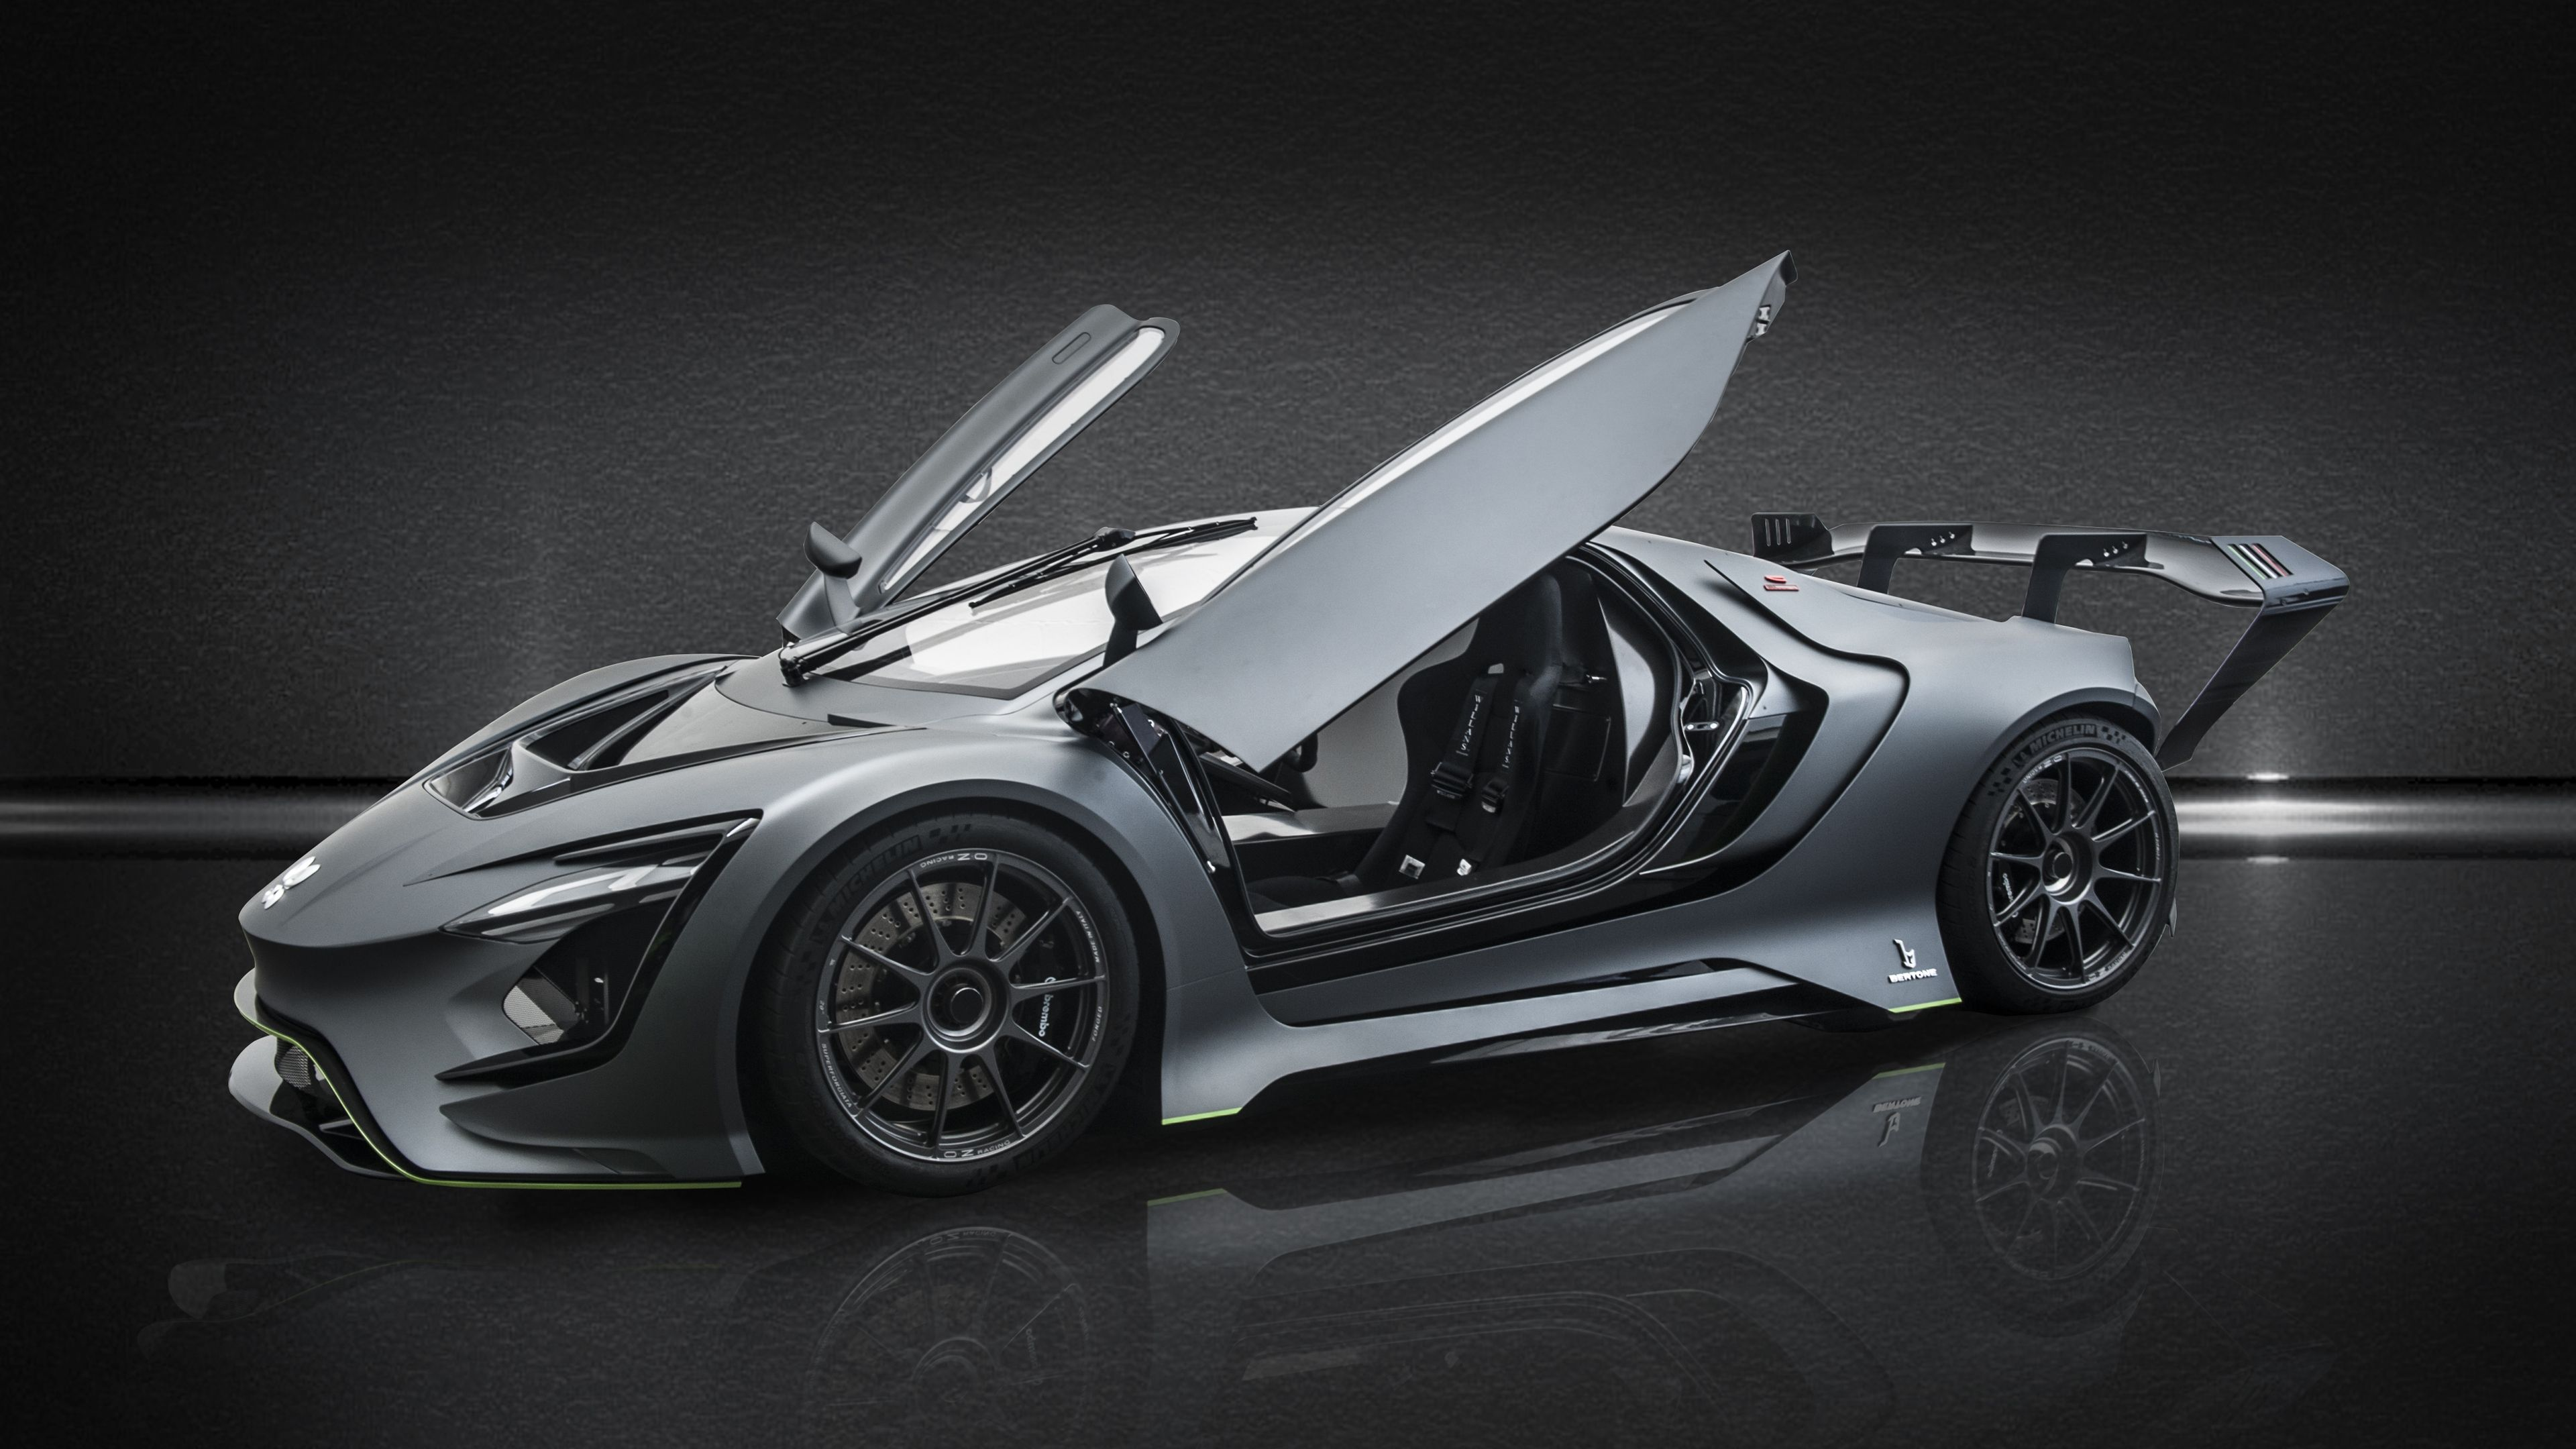 Dianche Bertone Bss Gt One 2018 Side View 4k Hd Wallpapers Cars